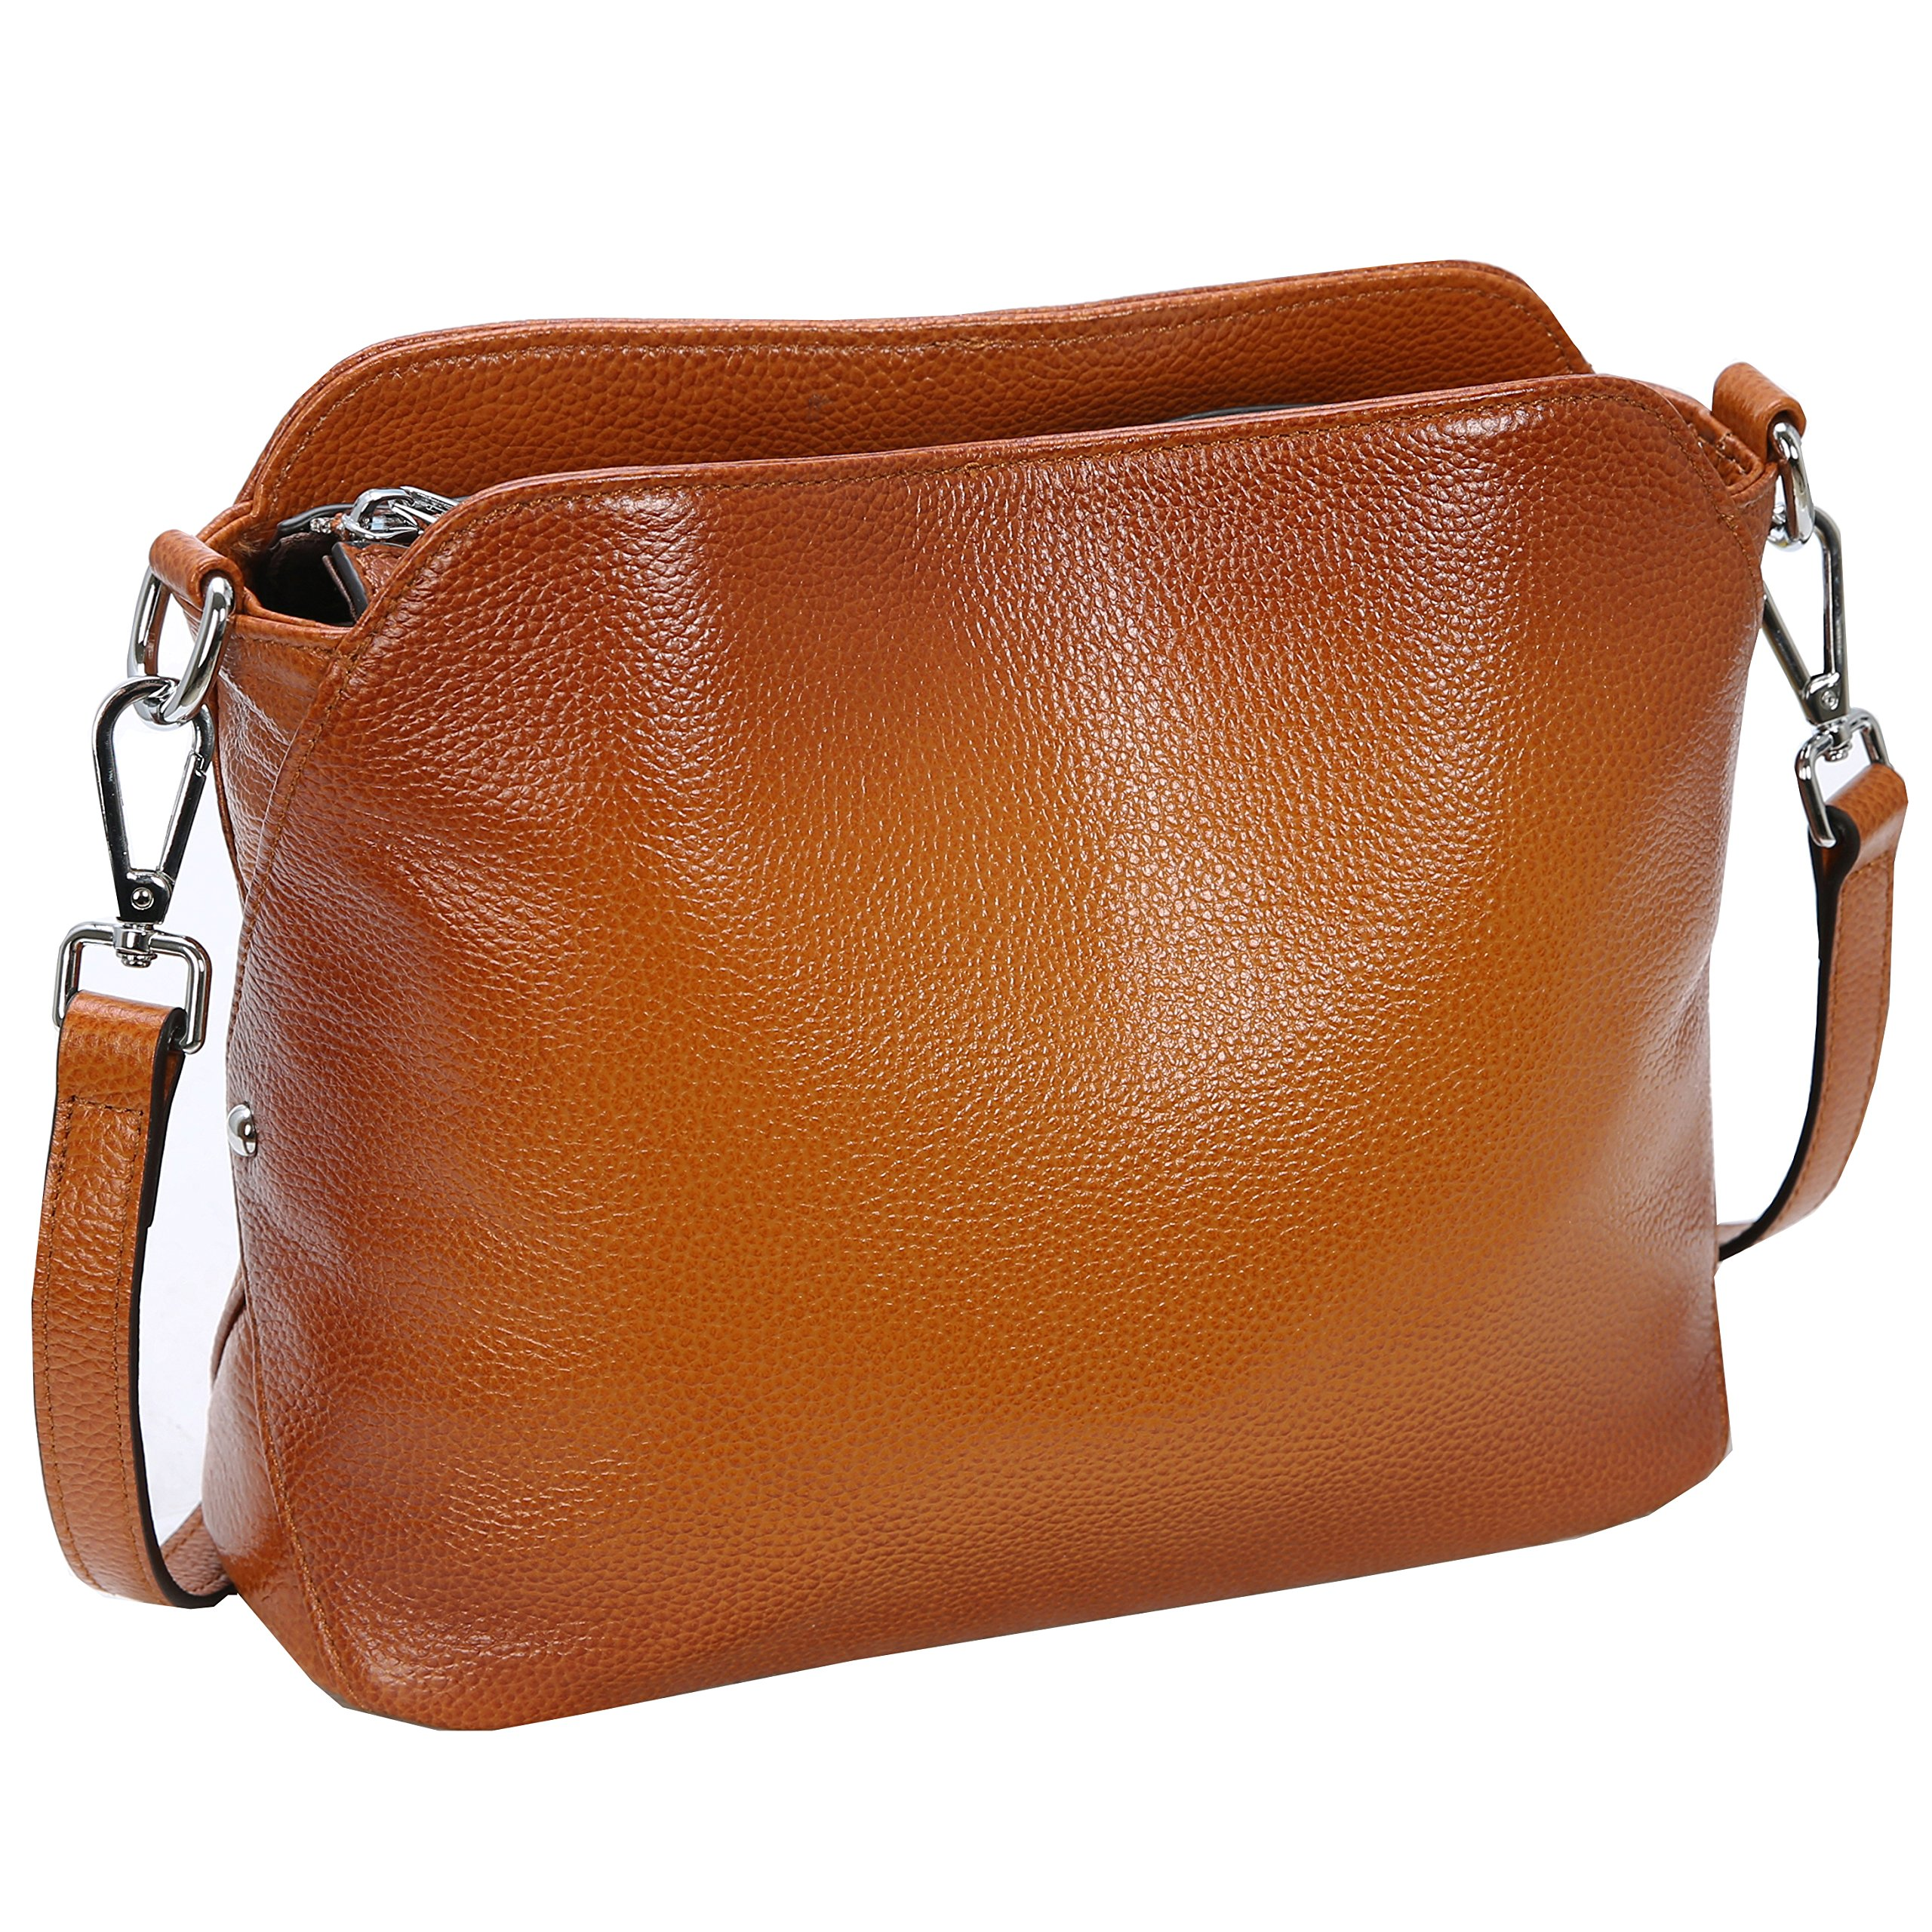 Kenoor Leather Handbags Small Shoulder Bag Crossbody Purse Hobo Clutch for Women (Sorrel)